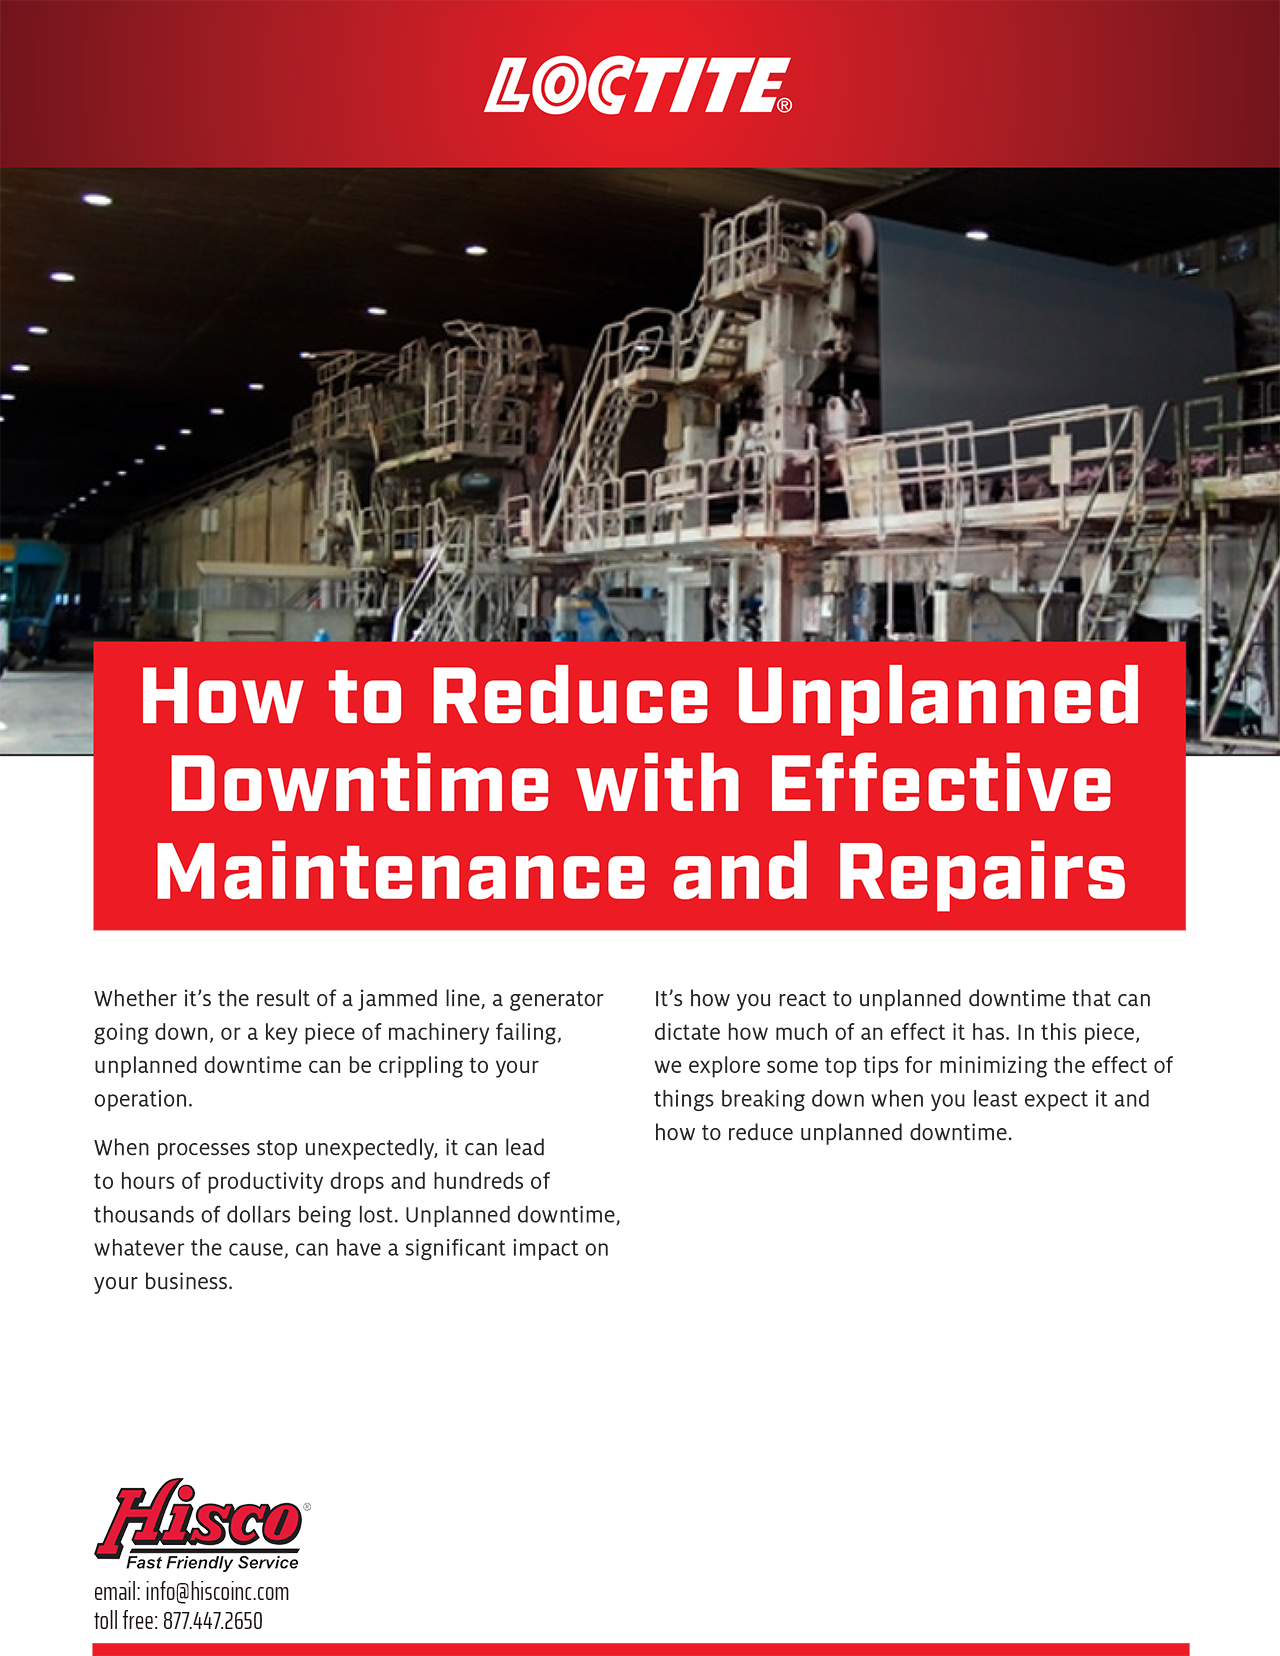 How to Reduce Unplanned Downtime with Effective Maintenance and Repairs p1